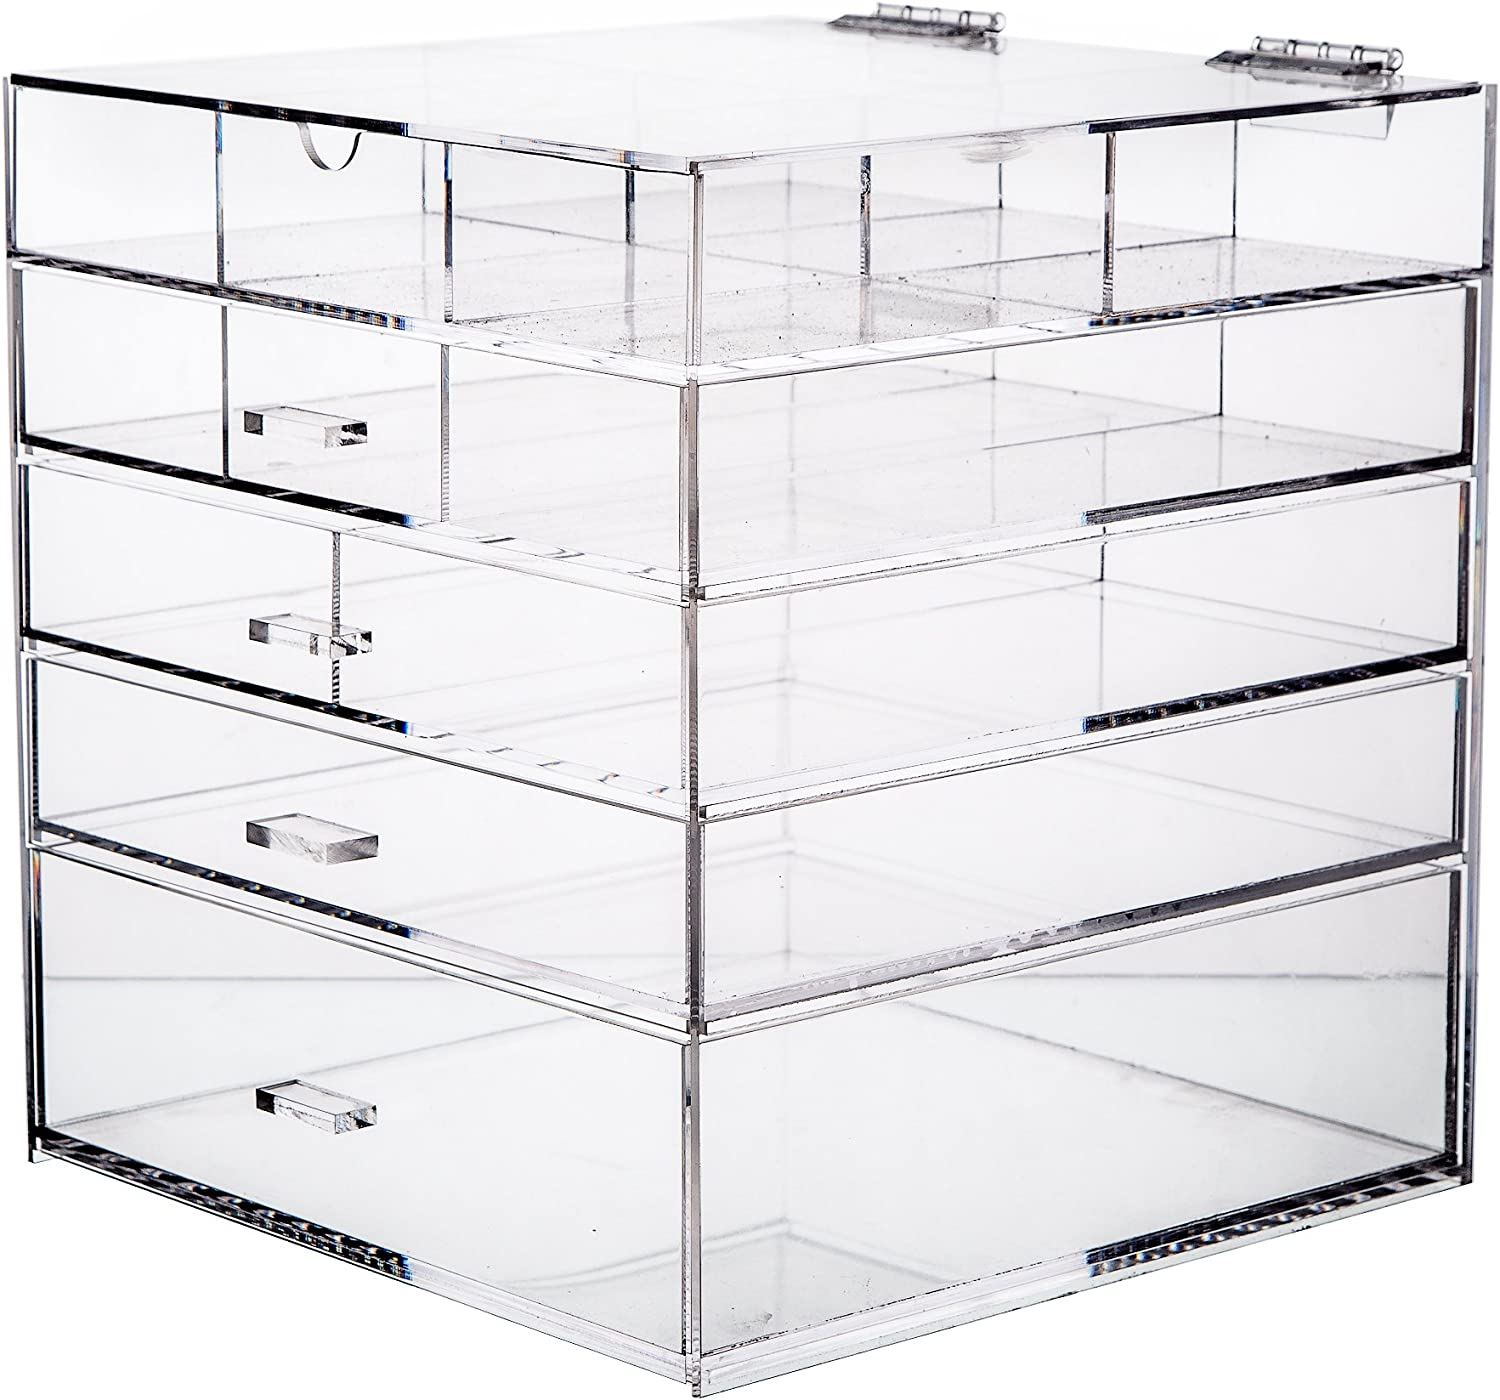 Cq acrylic Large 5 Tier Drawer Acrylic Makeup Organizer 10 x10 x11 ,Pack of 1